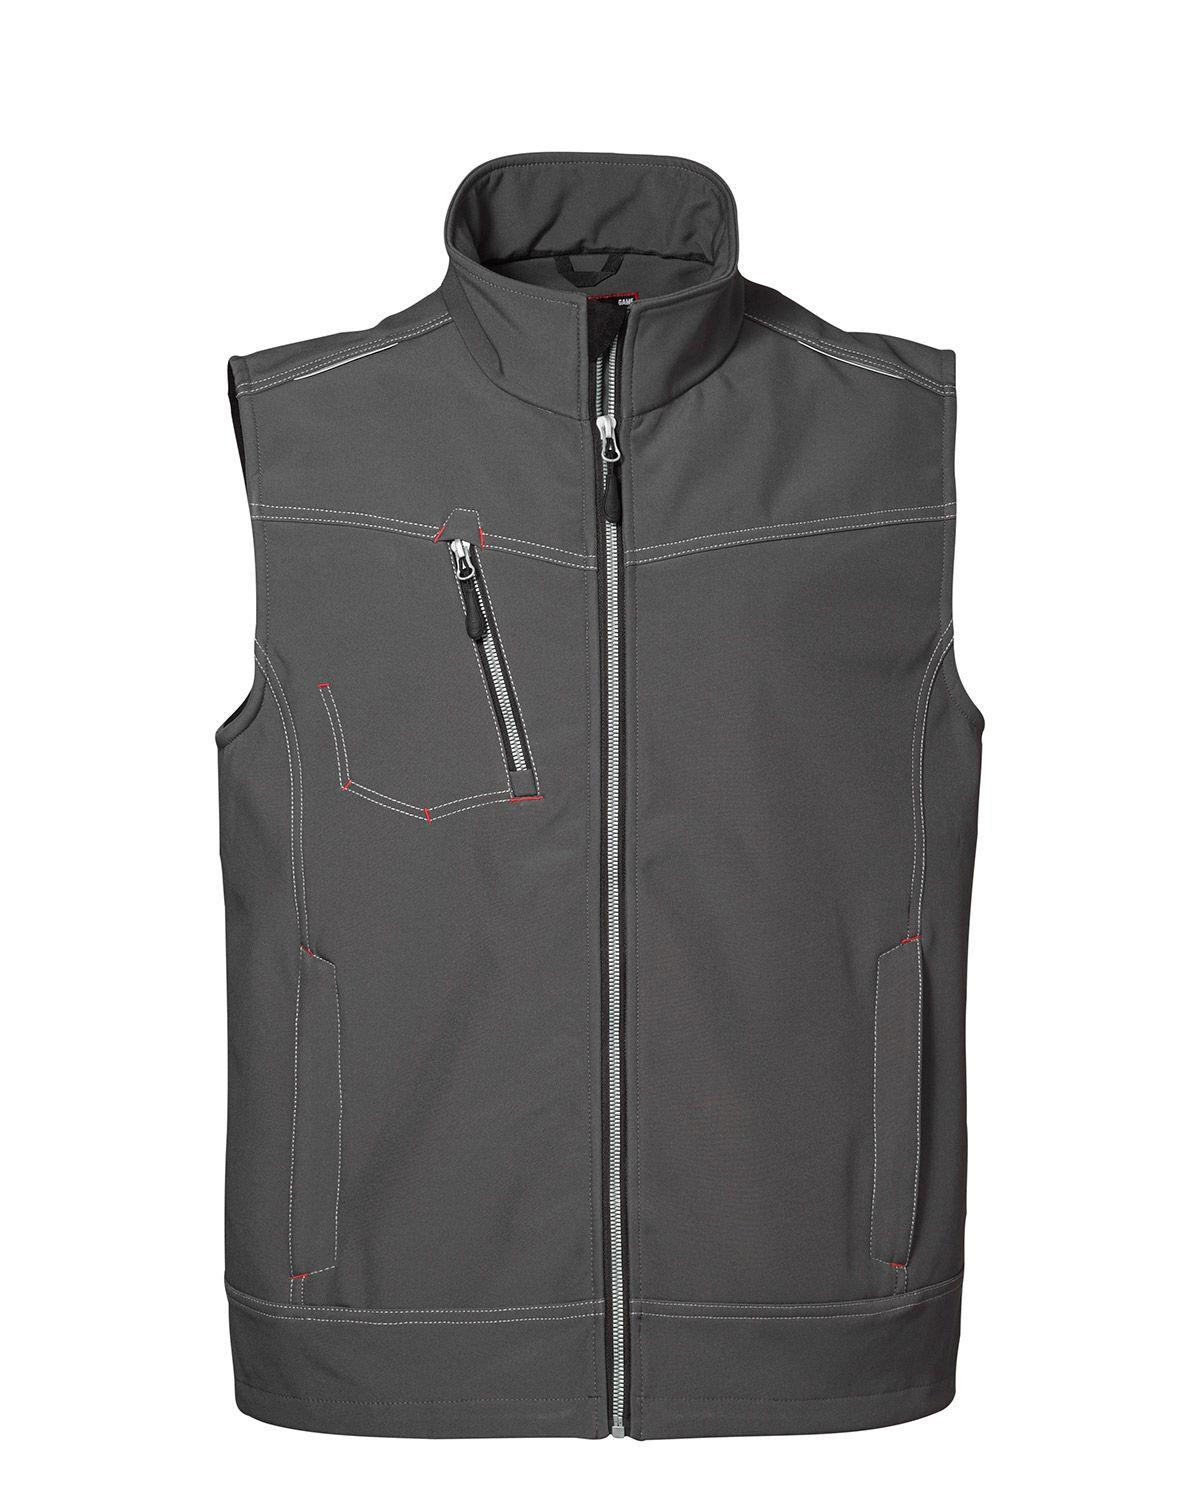 Image of   ID Softshell Vest (Sølv Grå, 2XL)